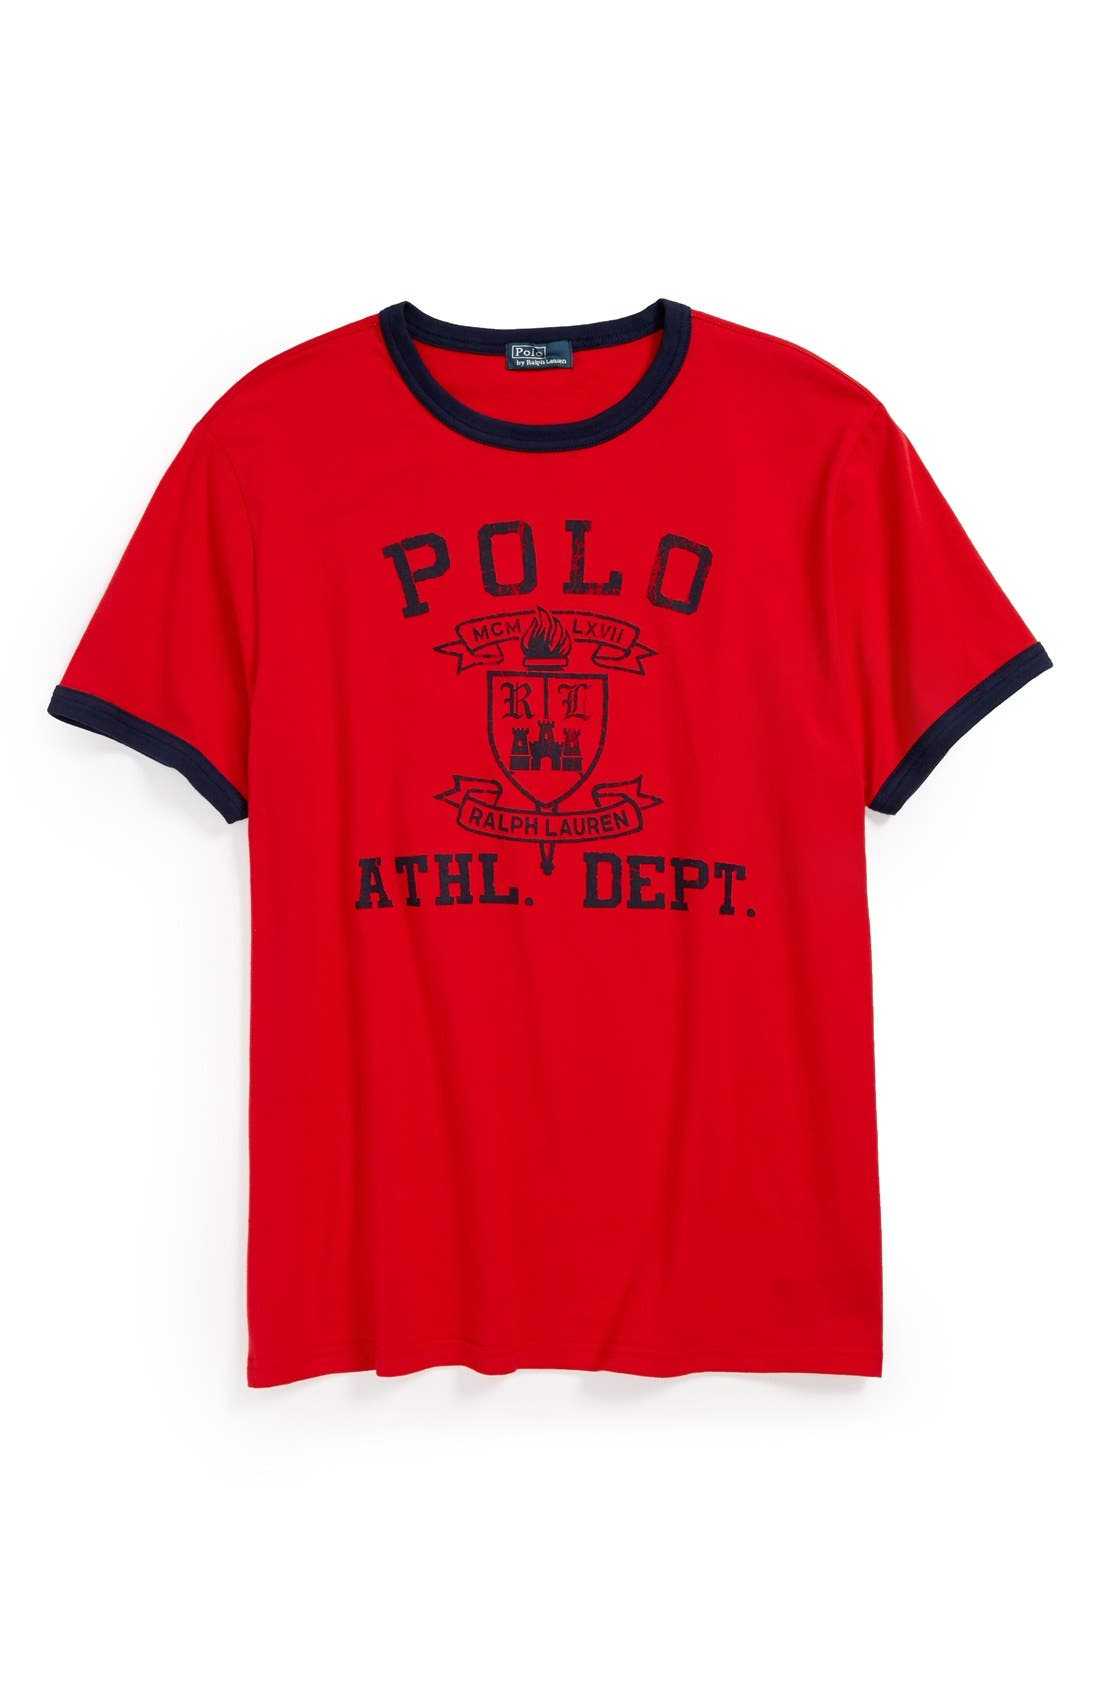 Alternate Image 1 Selected - Ralph Lauren Graphic T-Shirt (Big Boys)